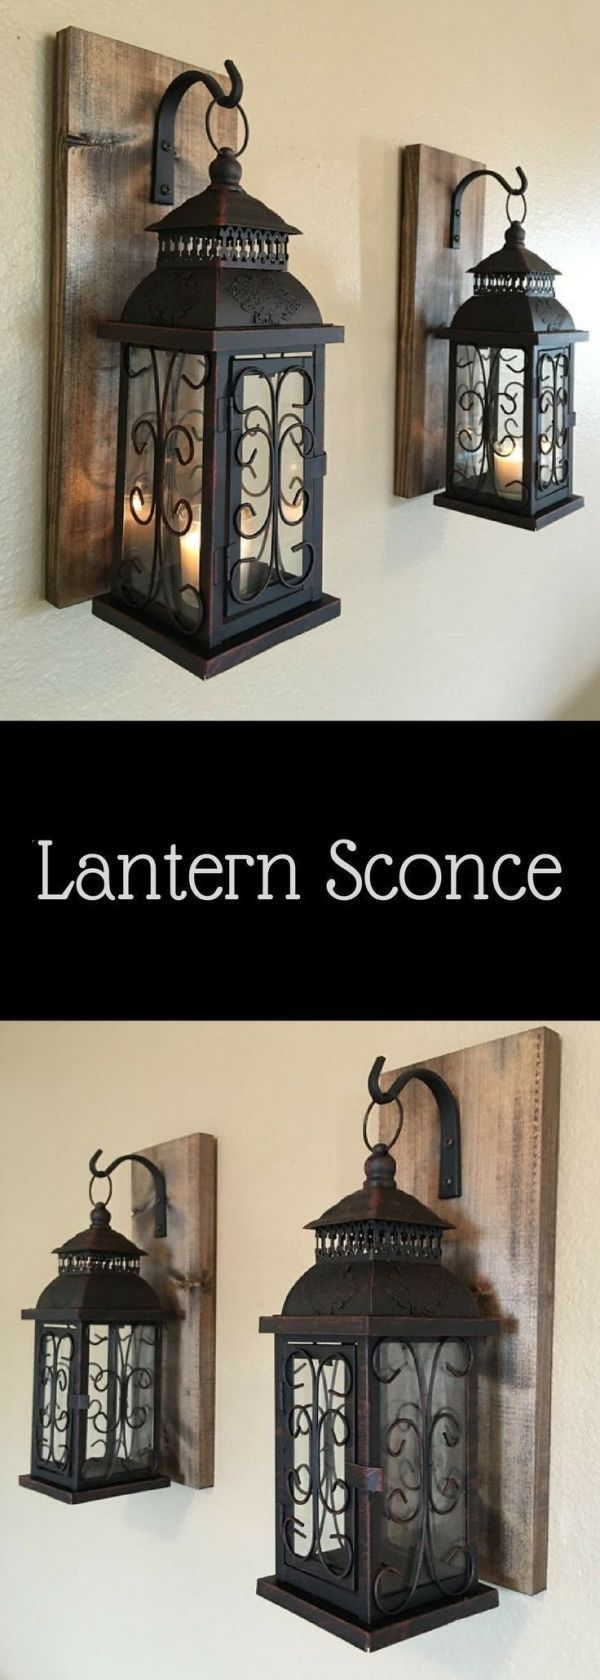 Lantern wall decoration, wall lights, bathroom decoration, home and living, wrought iron -  Lantern wall decoration, wall lights, bathroom decoration, home and living, wrought iron, #badezimm - #bathroom #decoration #firsthomedecor #home #homedecorpainting #homedecorpictures #homedecorquotes #iron #lantern #lights #living #Wall #wrought